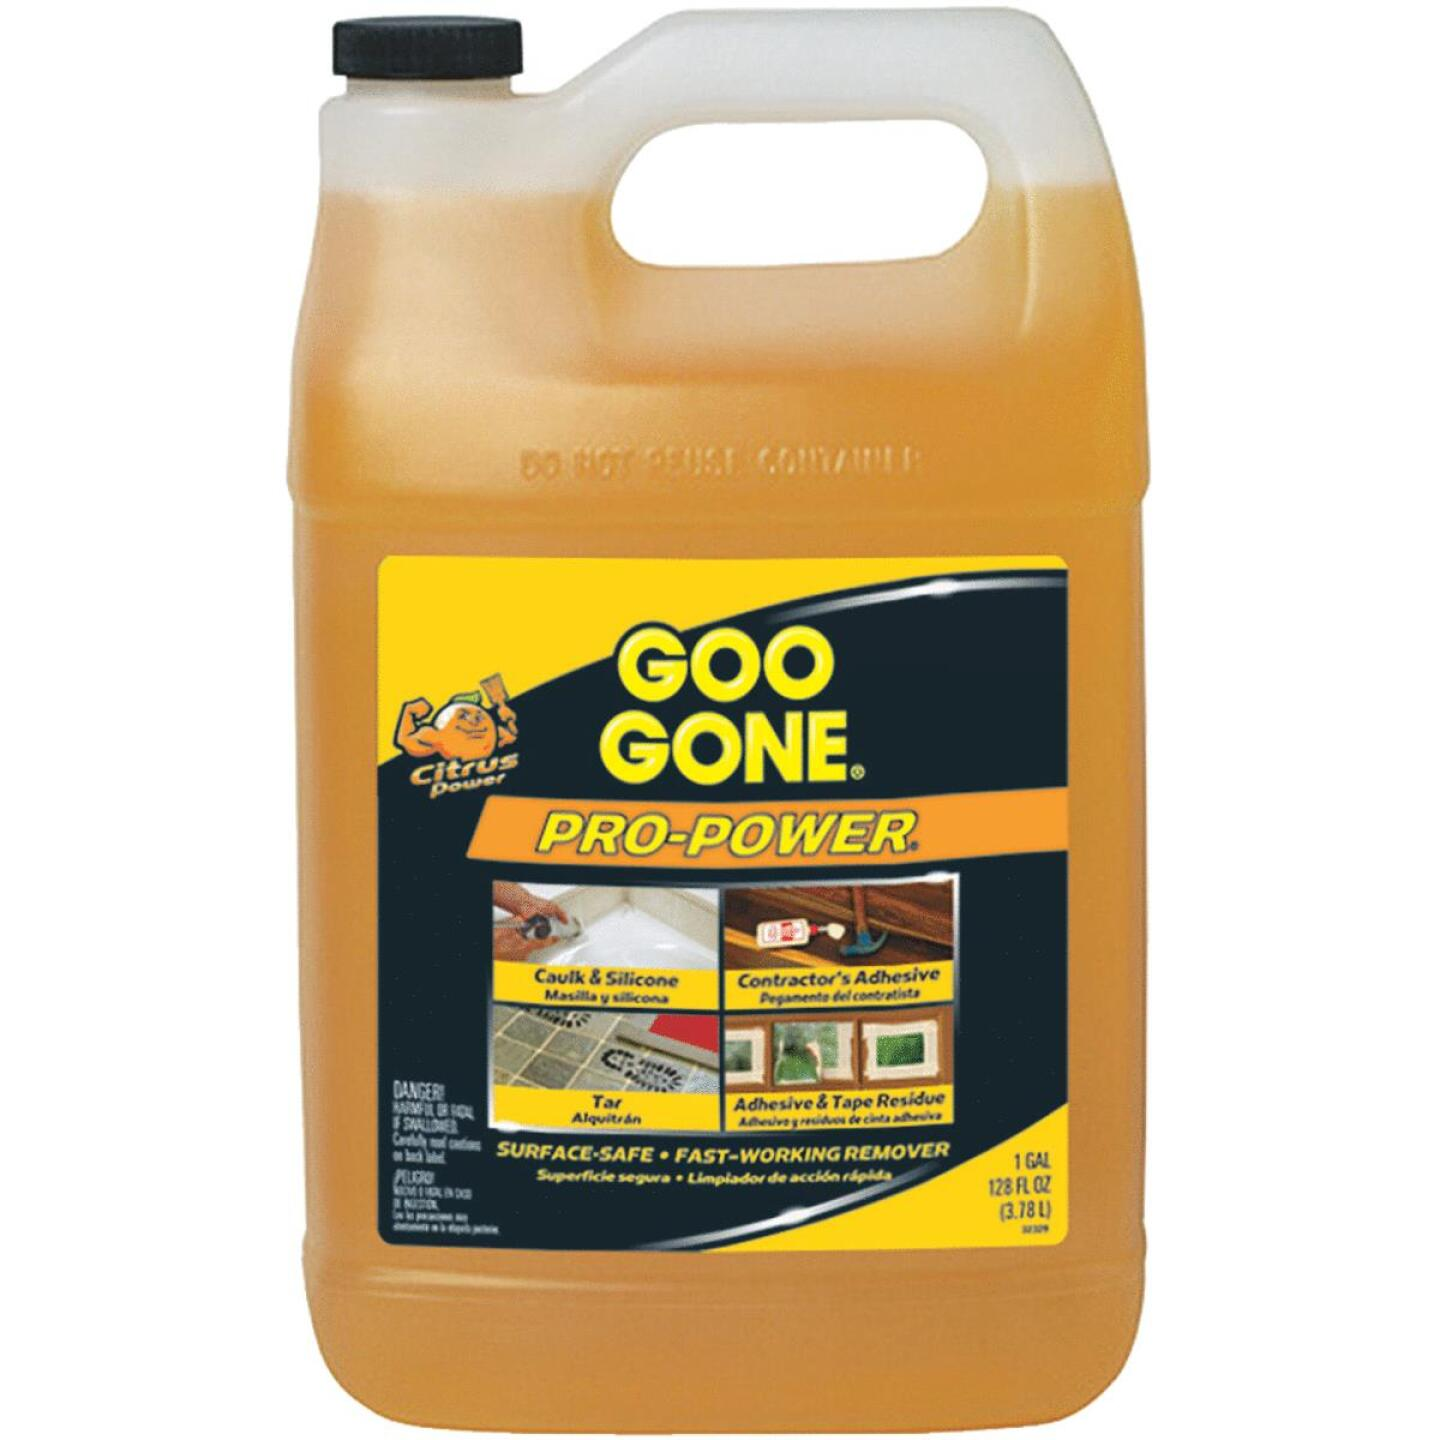 Goo Gone 1 Gal. Pro-Power Adhesive Remover Image 98